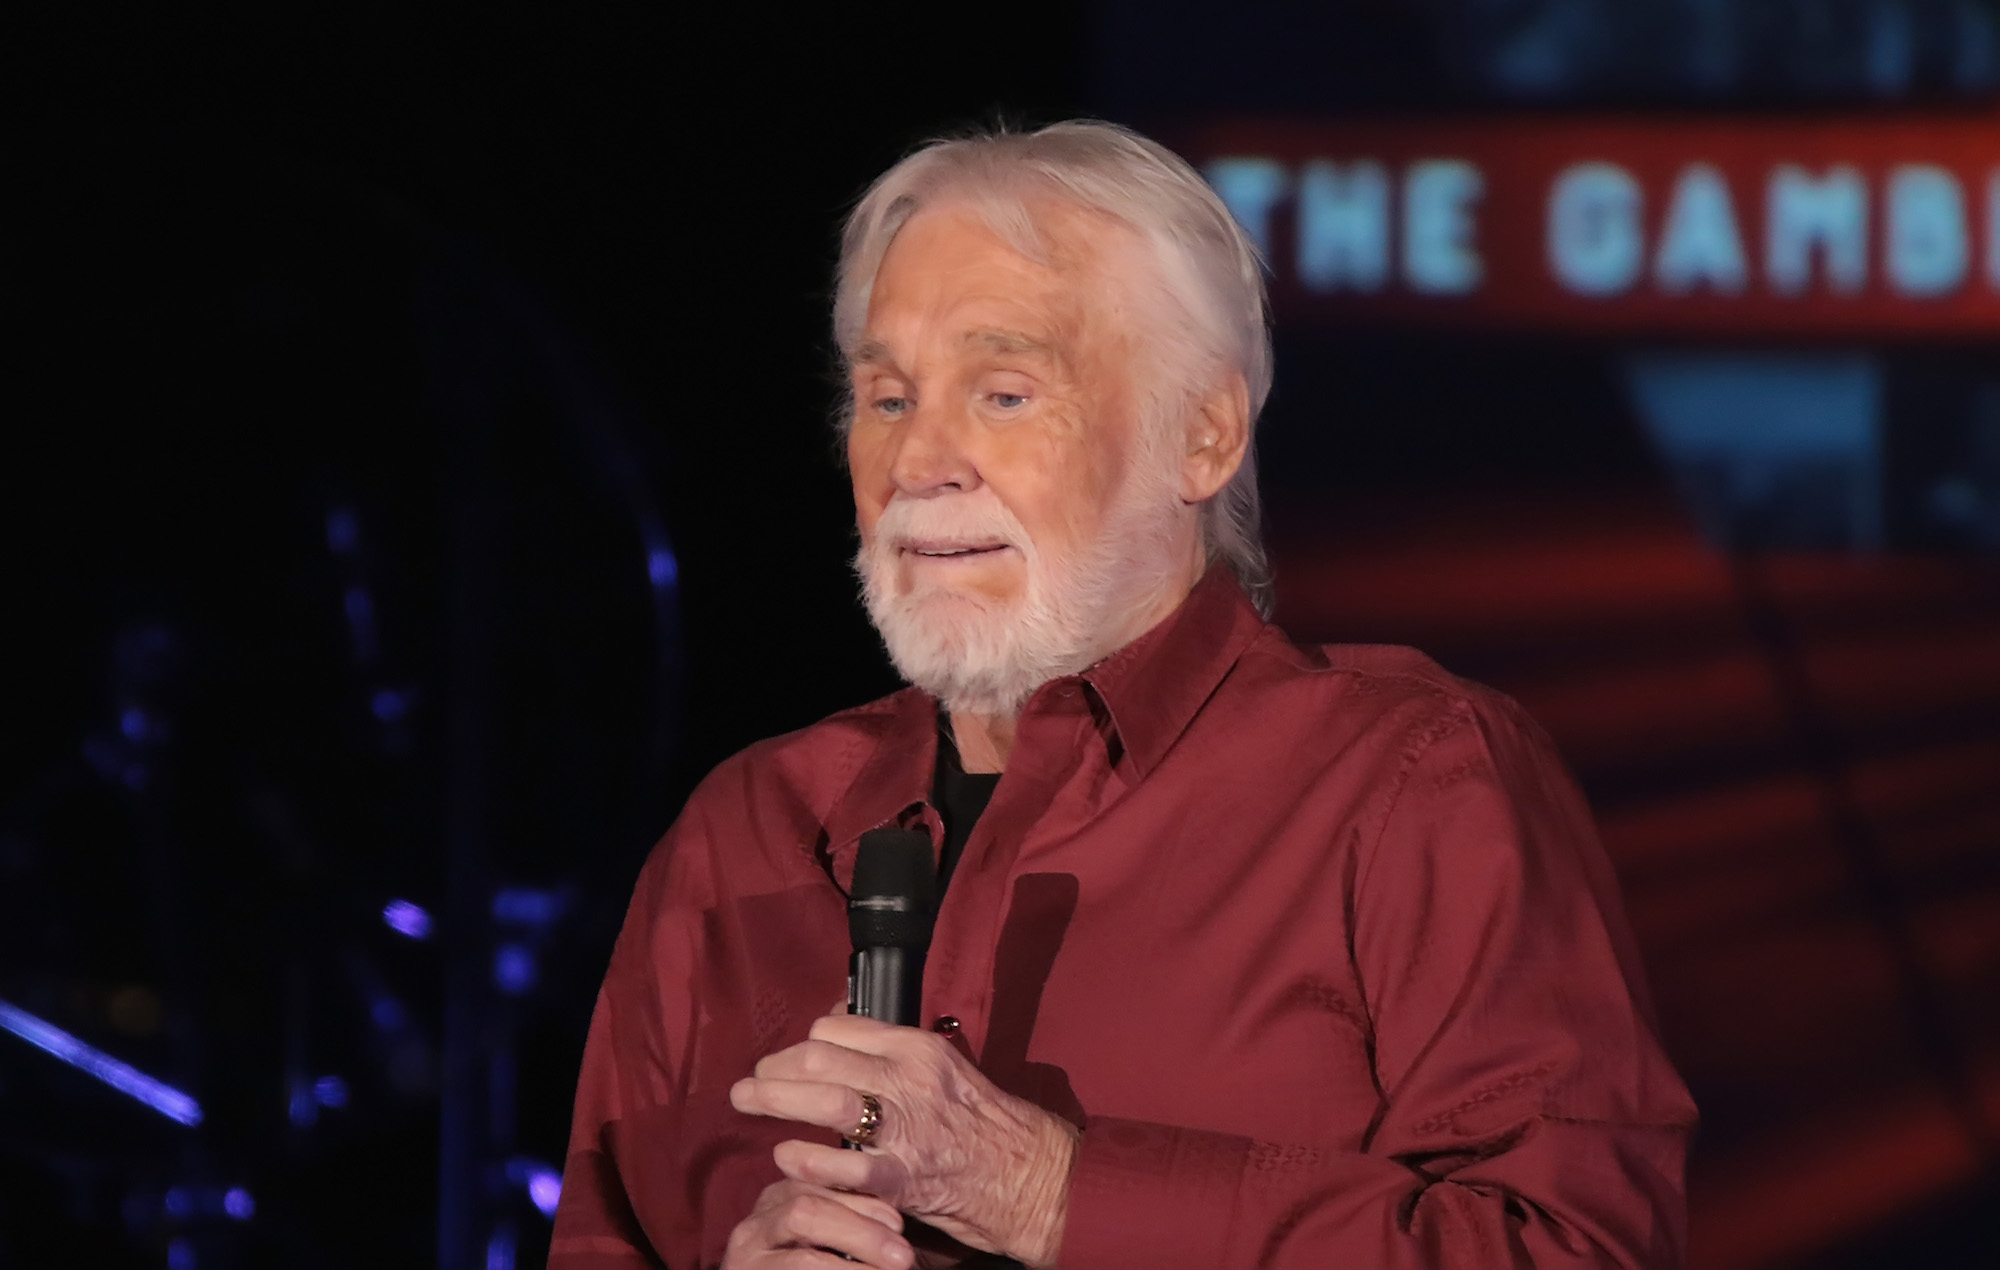 Country music icon Kenny Rogers has died aged 81 - EpicNews